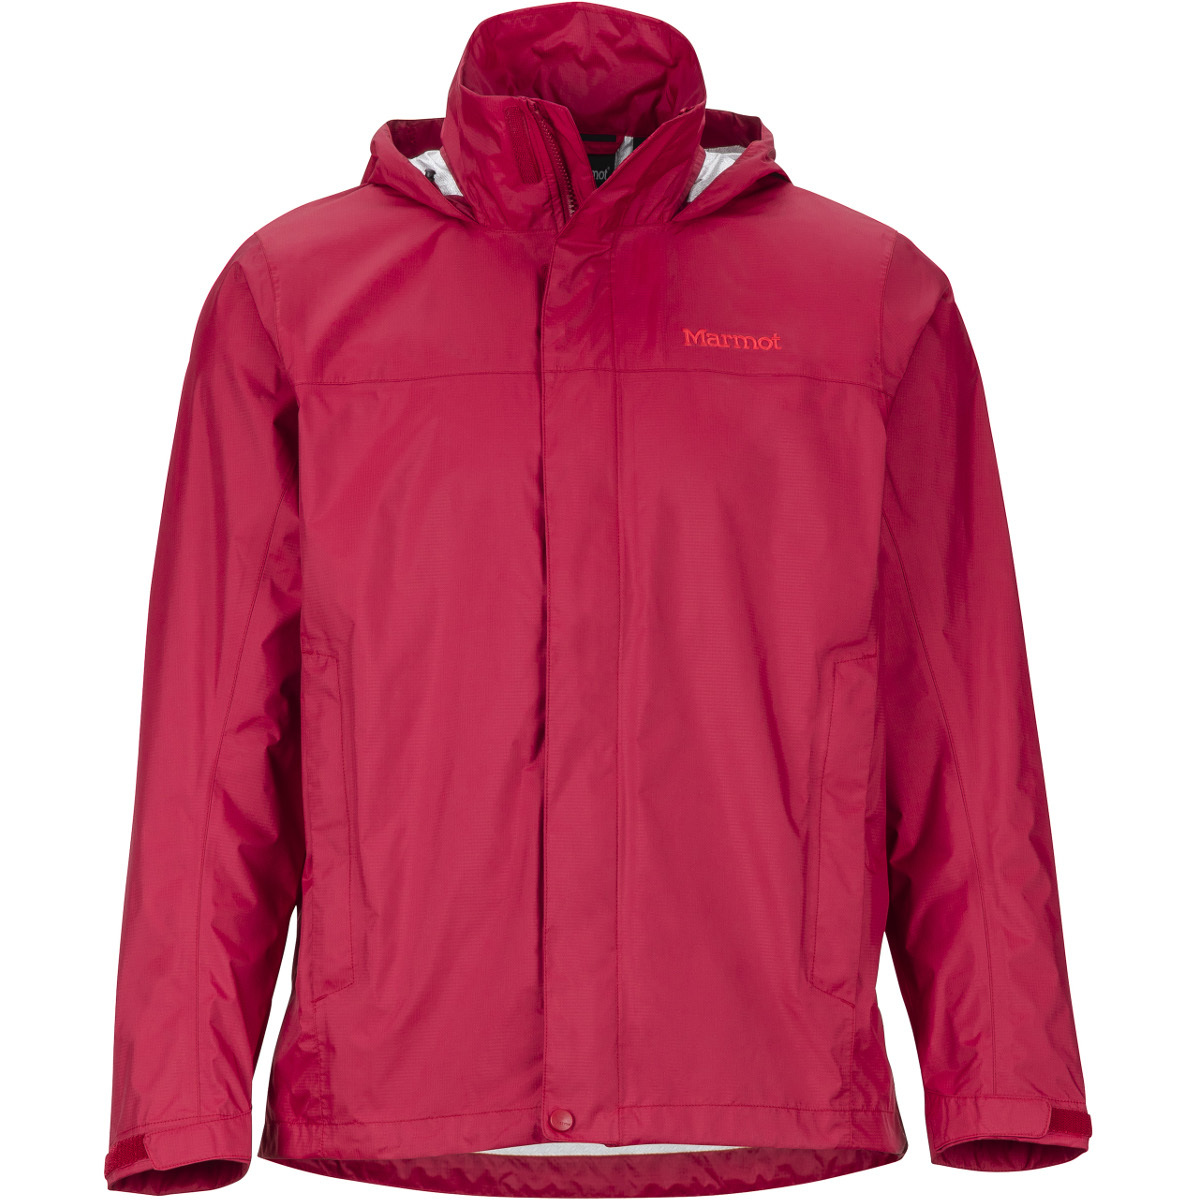 Marmot Men's Precip Jacket - Red, M